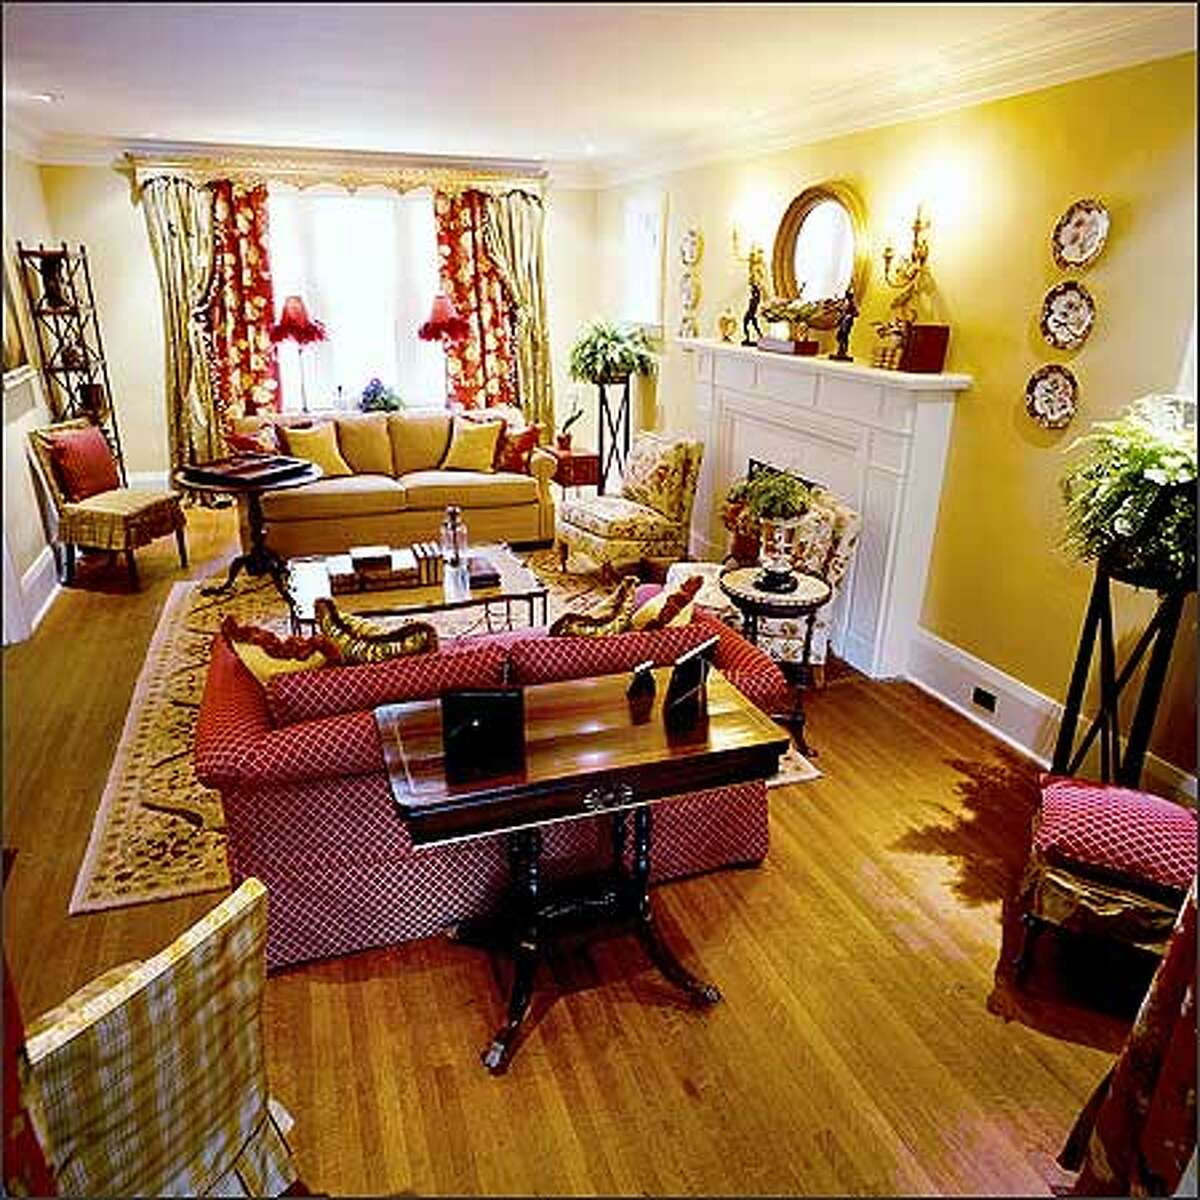 After: Creative lighting and a wonderful palette of reds, creams and yellows give this room a big boost of color and cherished antiques a new lease on life.